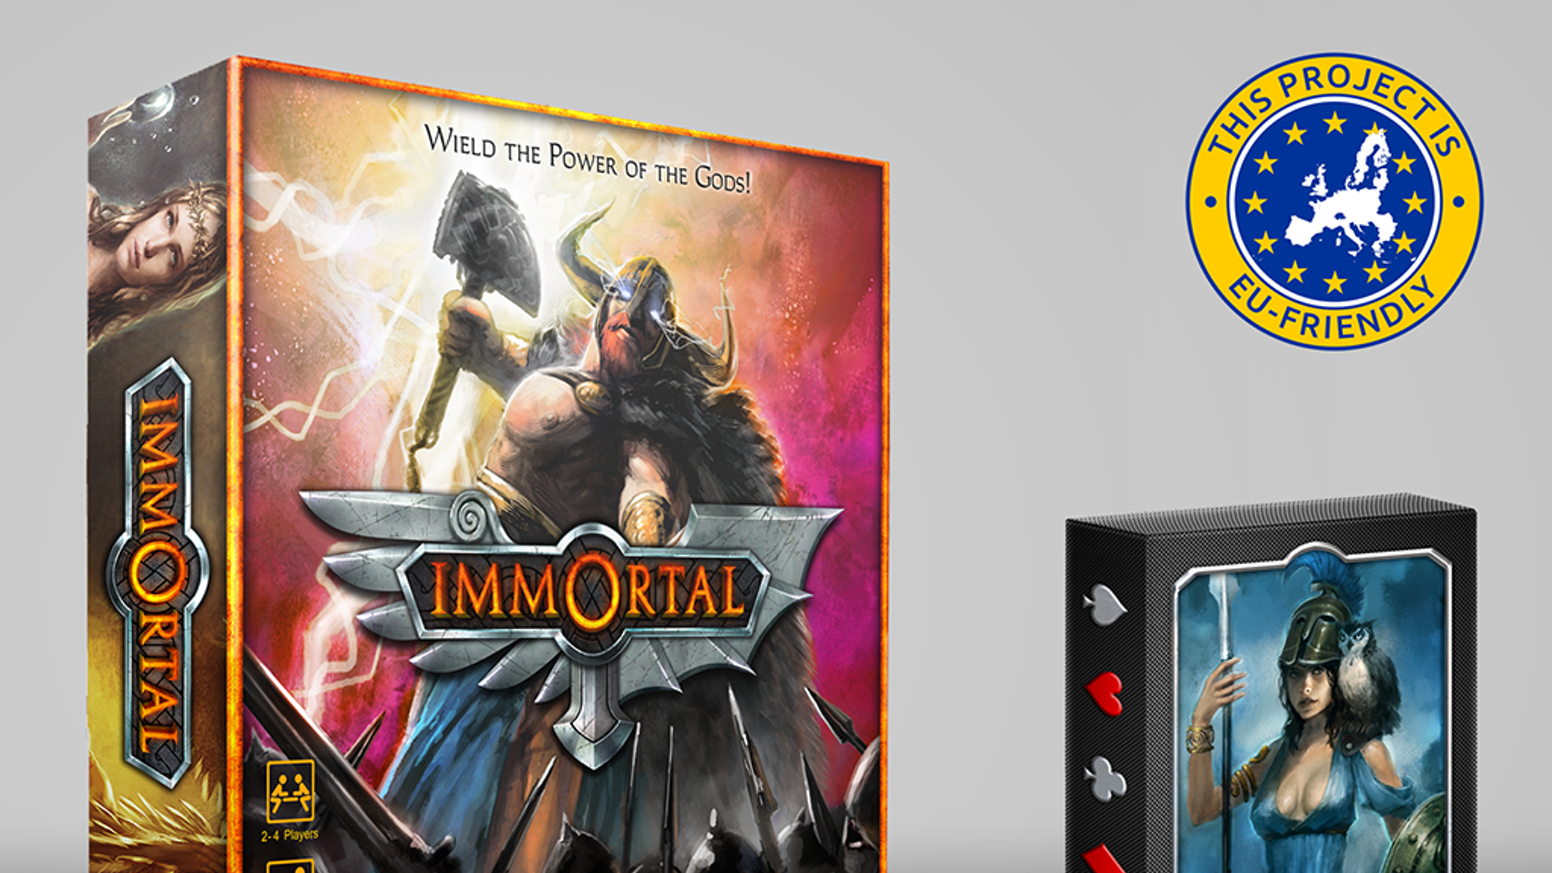 Summon the myths of the ancient Egyptians, Celtics, Greeks, Norse, Japanese, and Native Americans in this epic strategy game!